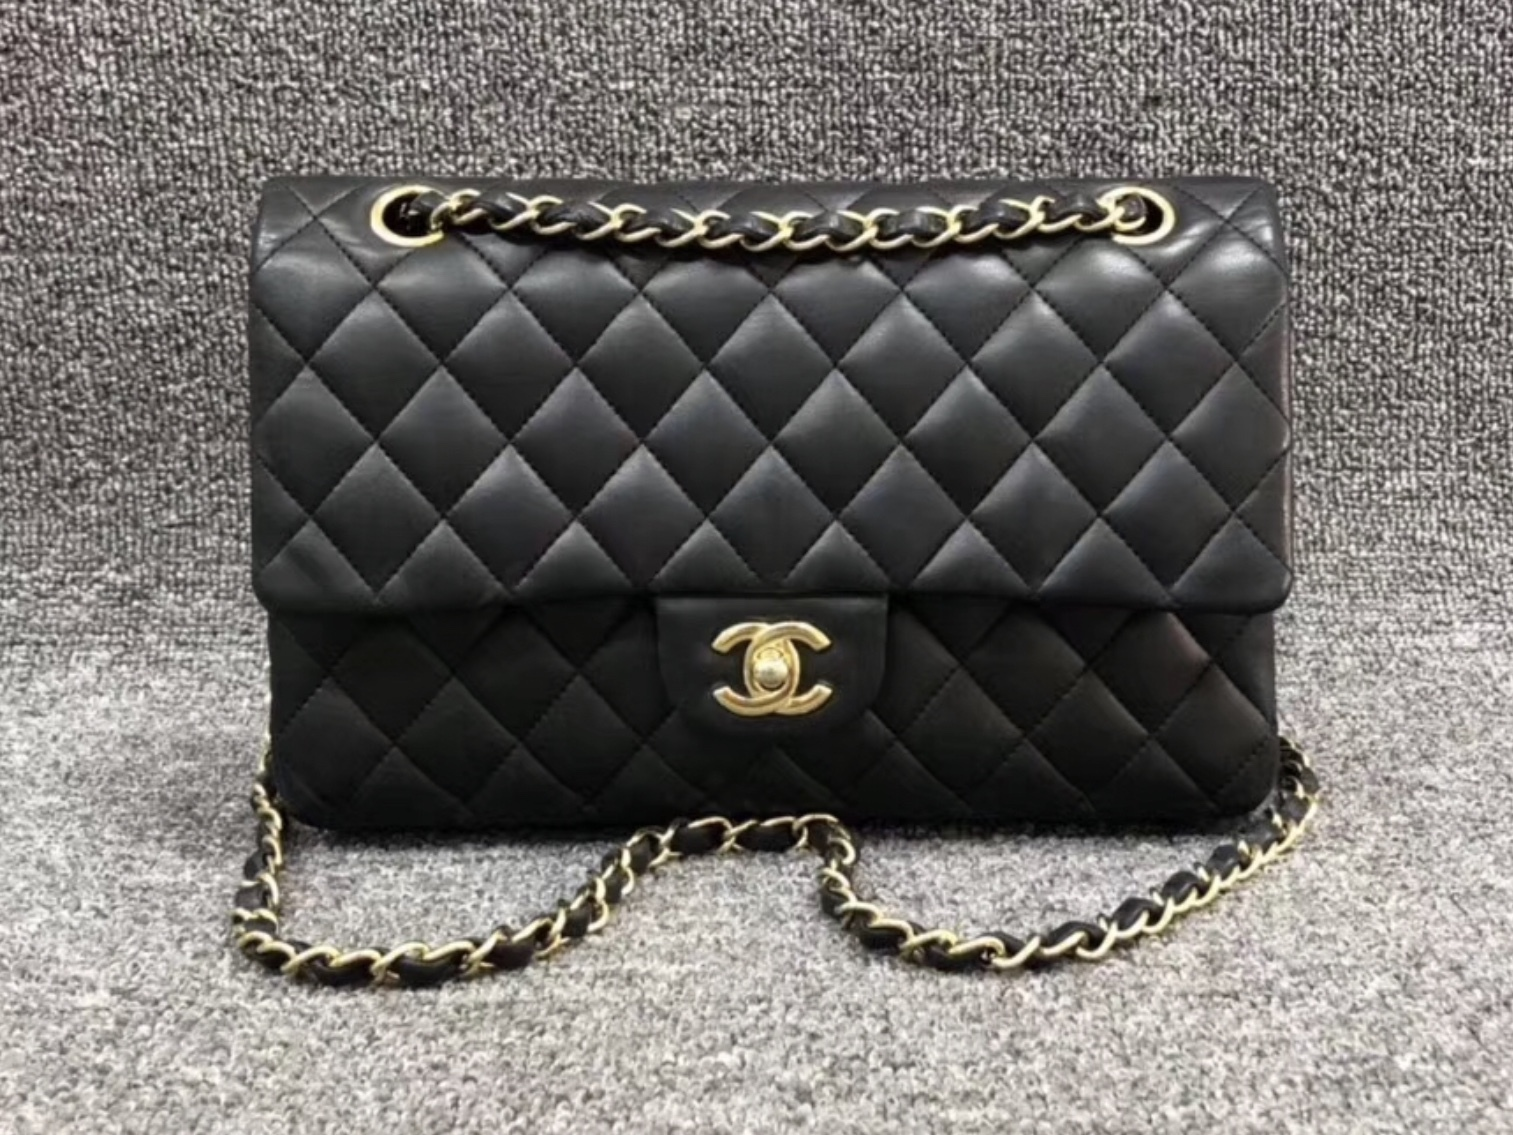 AUTHENTIC Chanel Quilted Lambskin Classic Medium Black Double Flap Bag GHW